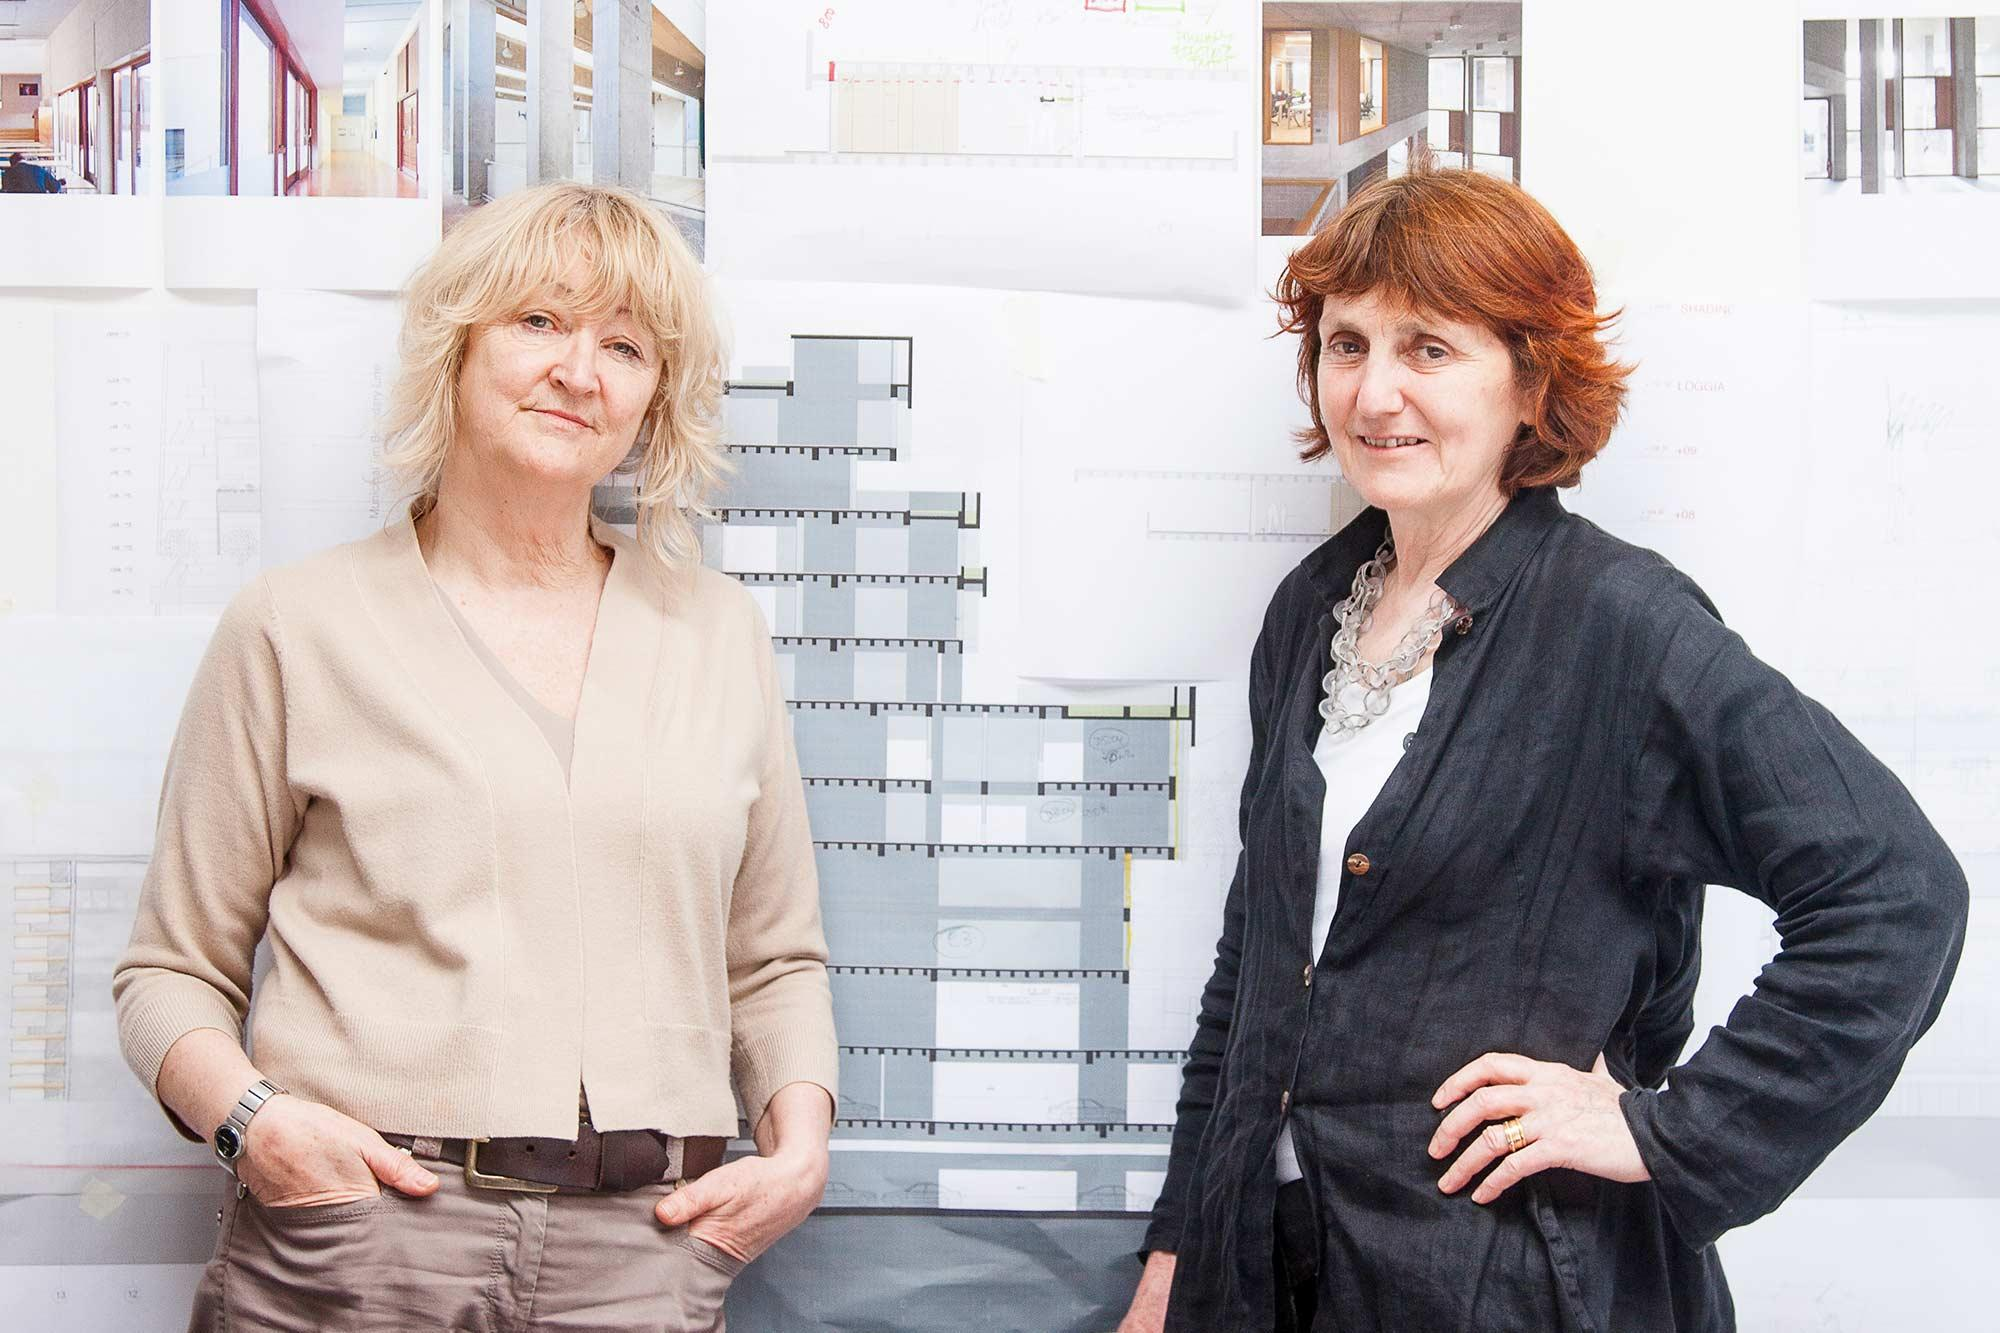 Yvonne Farrell, left, and Shelley McNamara are the 2017 Thomas Jefferson Foundation Medalists in Architecture.